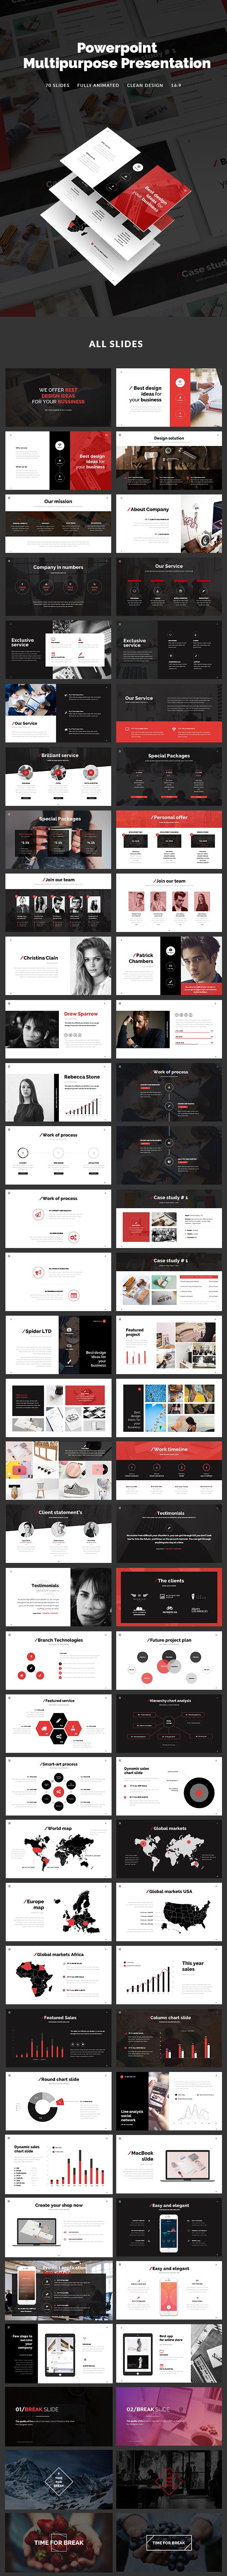 Best 25 power point presentation ideas on pinterest company presentation toneelgroepblik Image collections